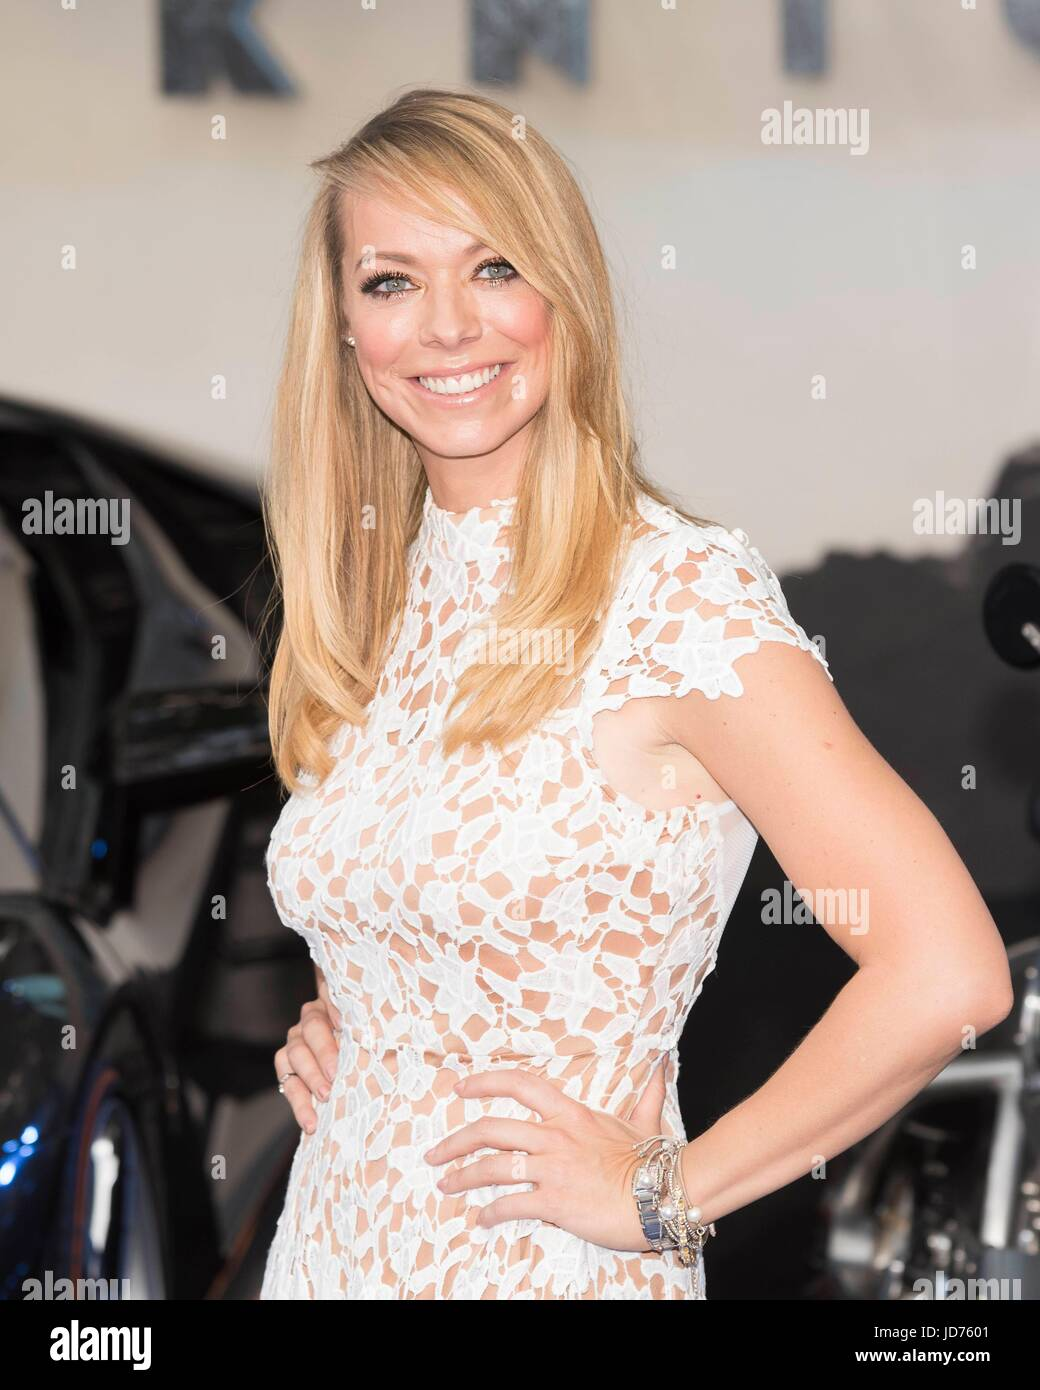 London, United Kingdom Of Great Britain And Northern Ireland. 18th June, 2017. Liz McClarnon attends the Global - Stock Image